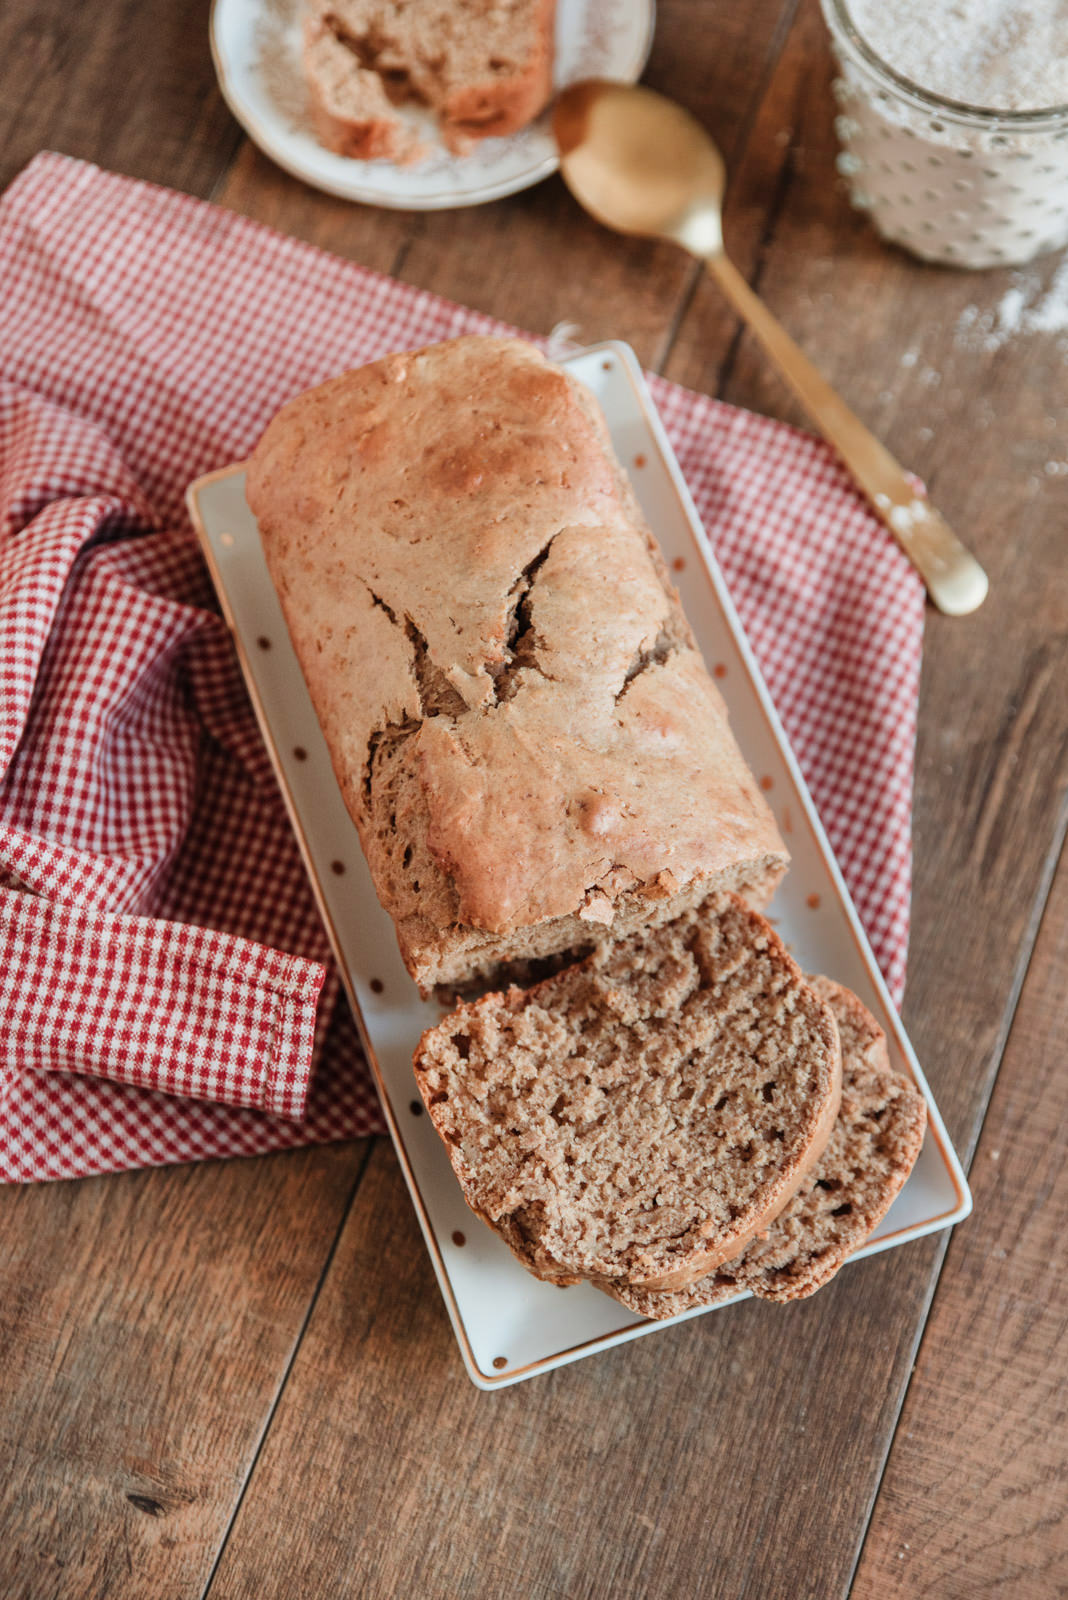 Blog-Mode-And-The-City-Food-Recette-Banana-Bread-3